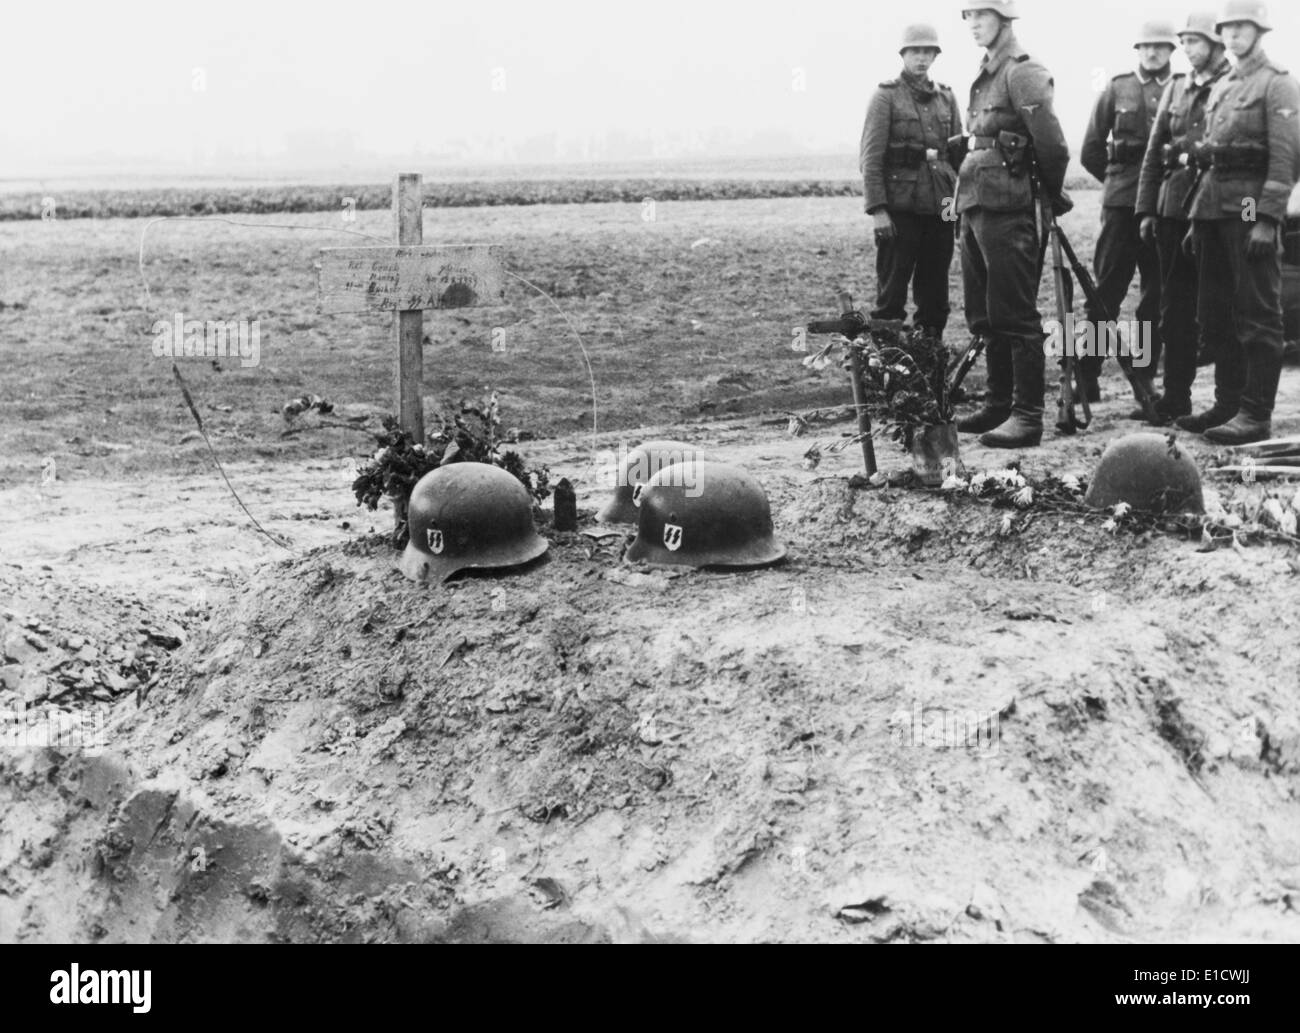 German Waffen-SS troops at the helmet topped graves of their fellows during the invasion of Poland. Sept. 1939. World War 2. - Stock Image